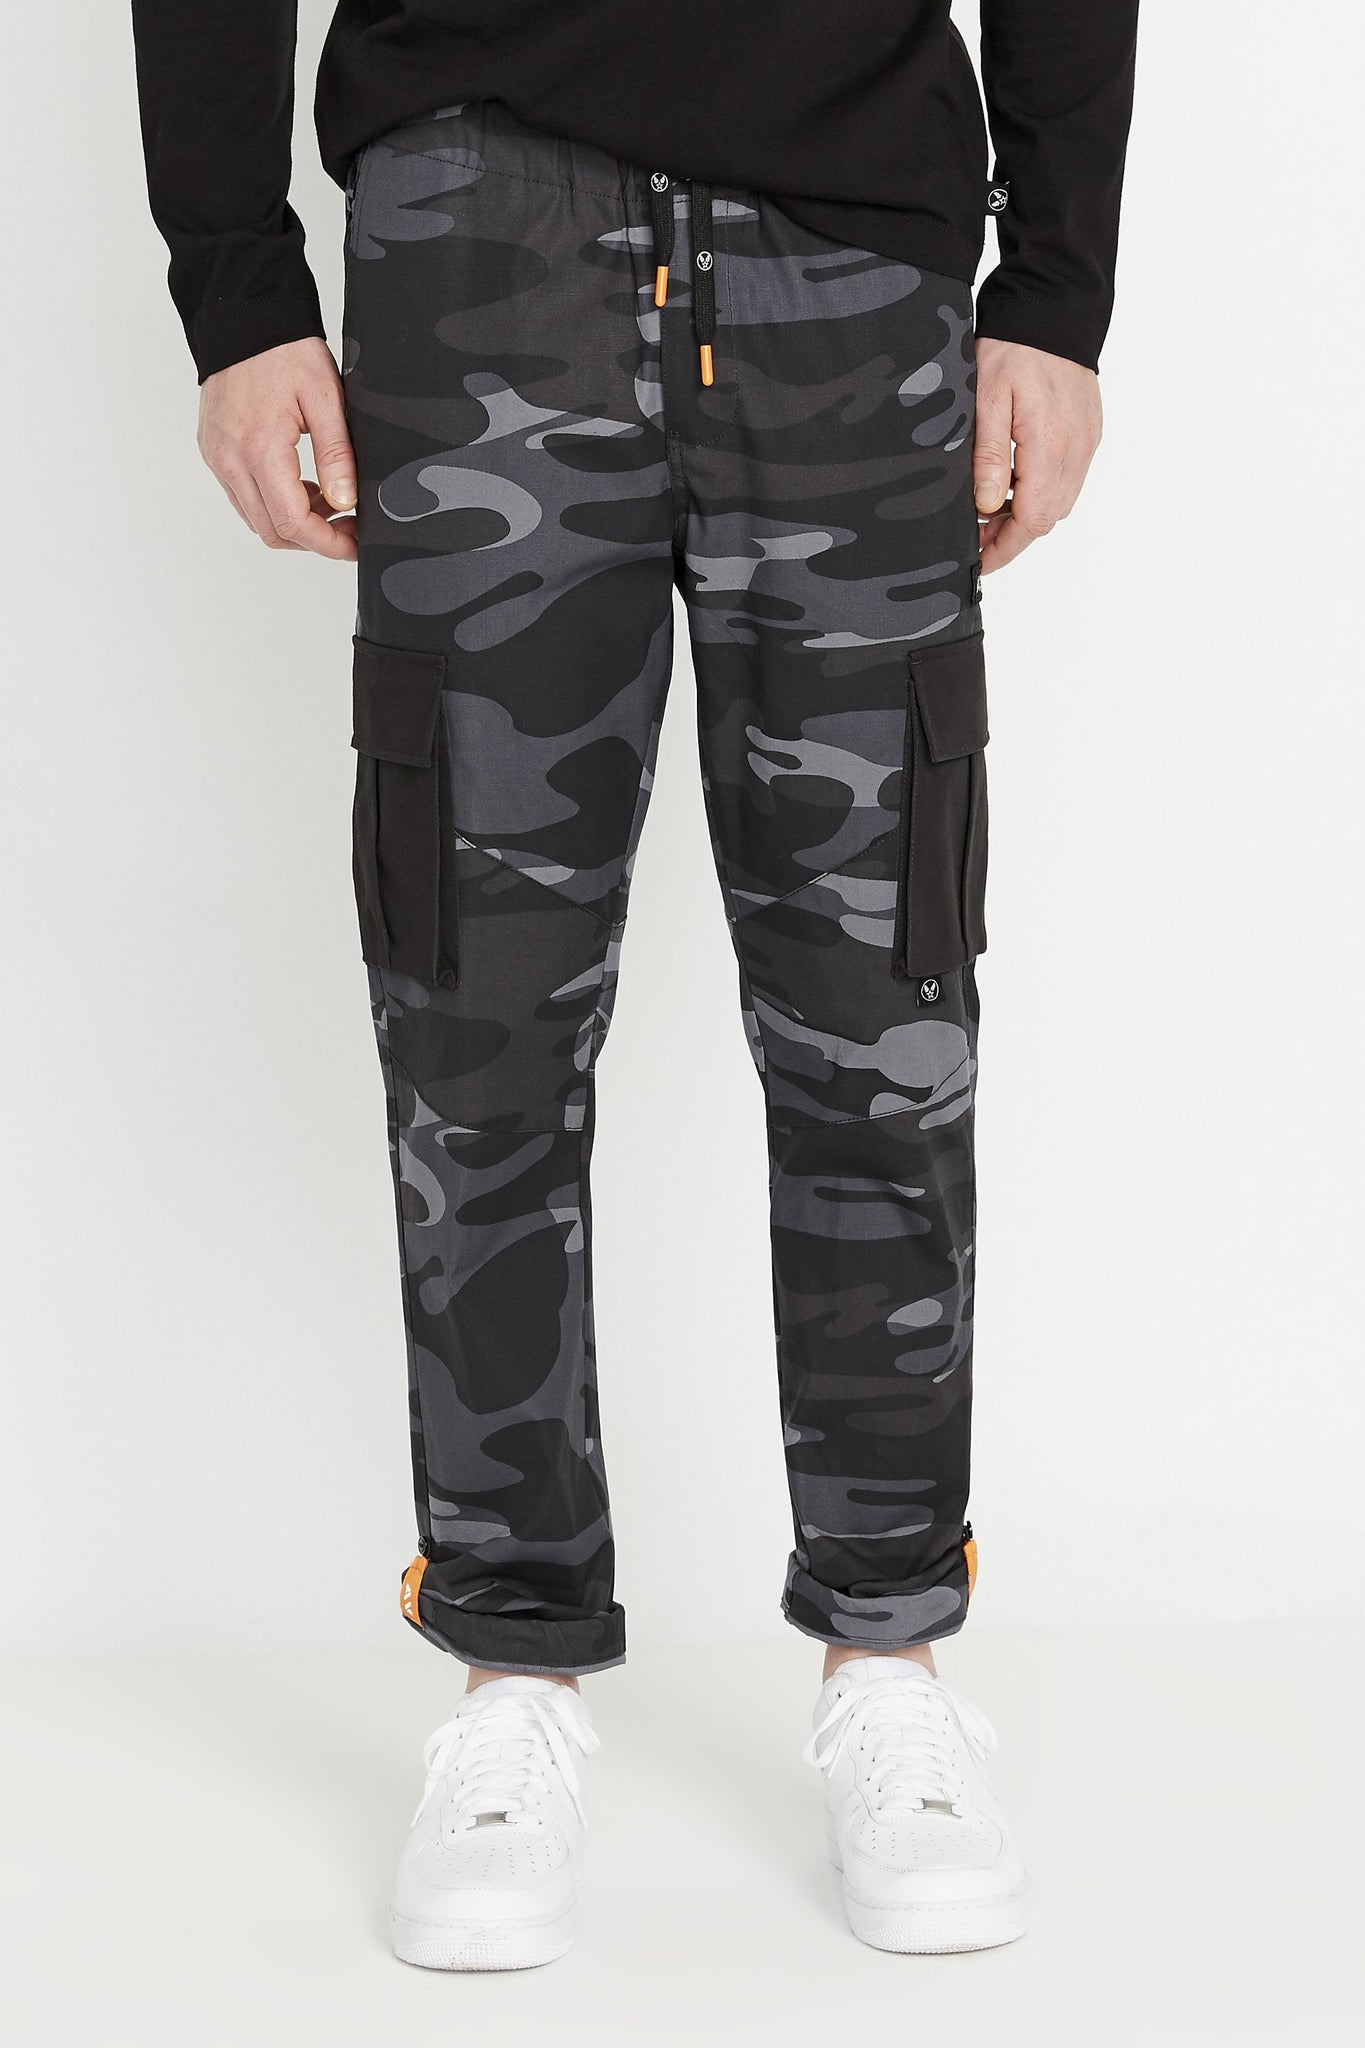 Front view of black camo print pants with side cargo pockets in solid color.  Rolled up hem with reflective logo